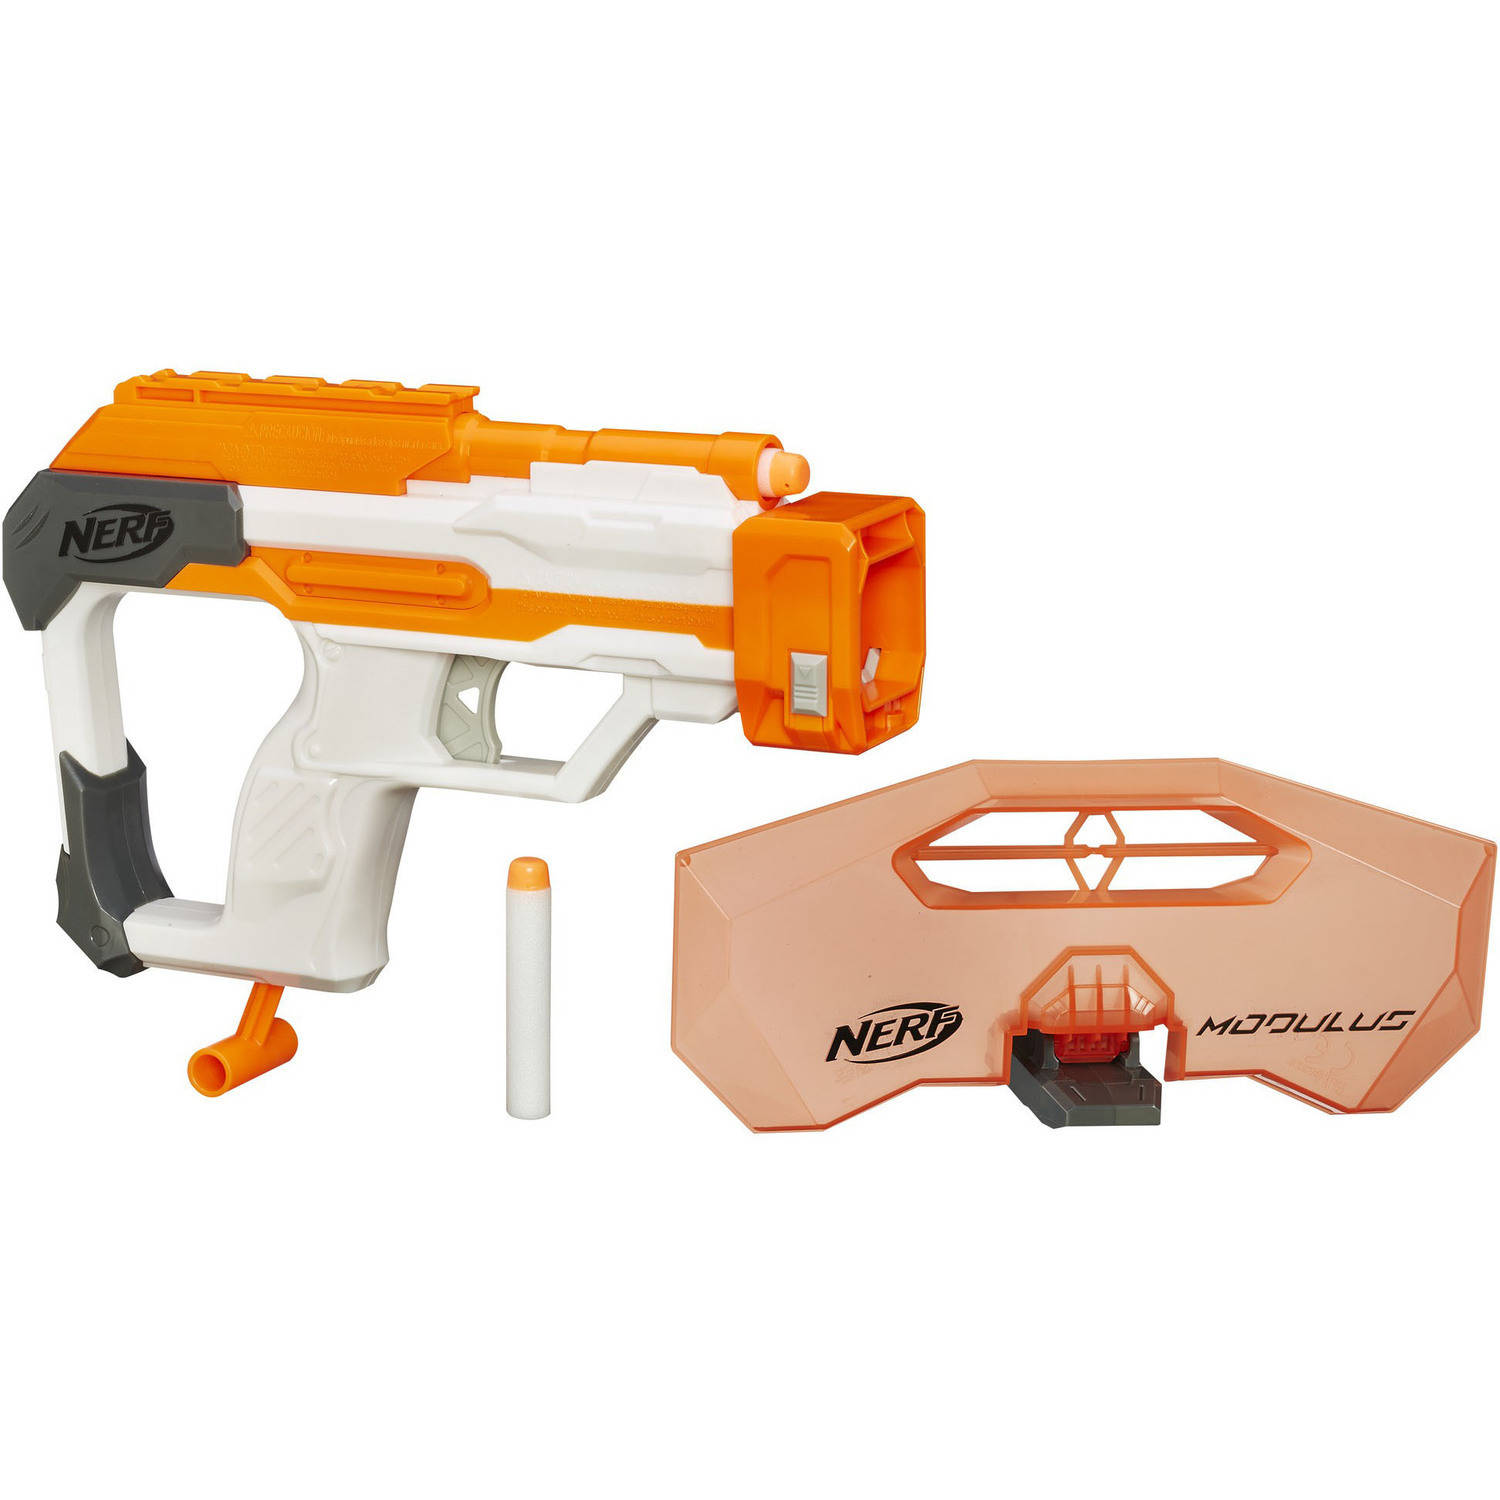 Nerf Modulus - strike and defend kit with flip clip